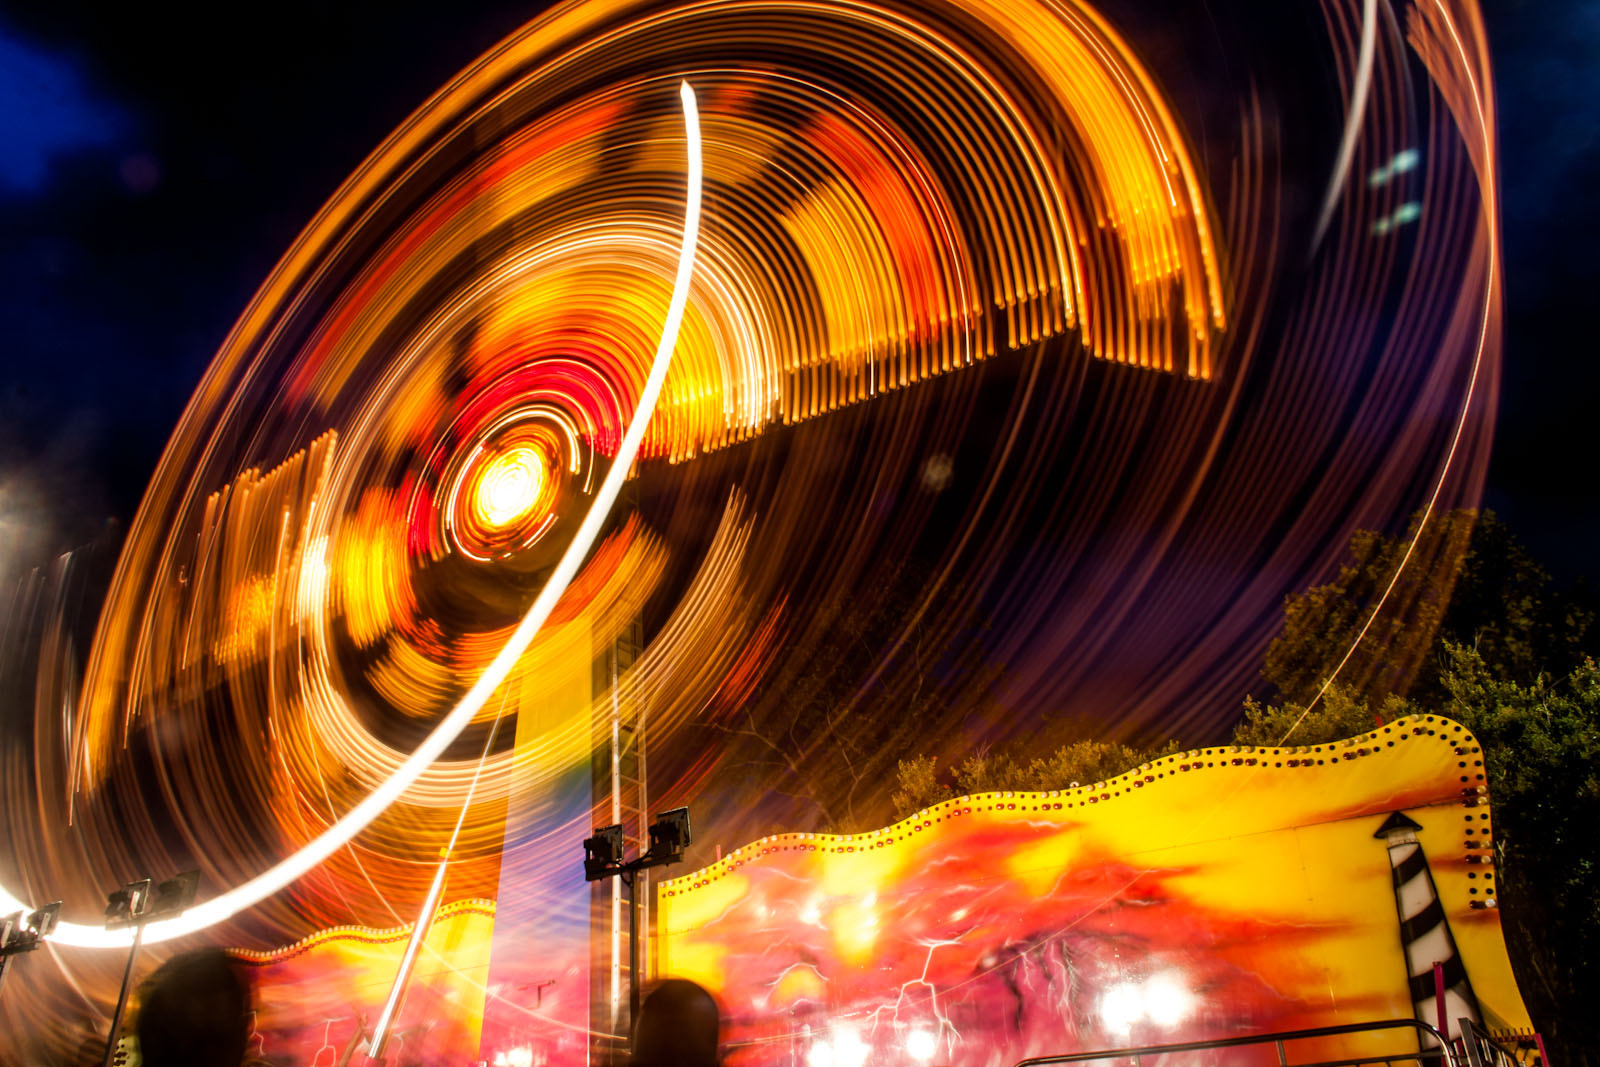 Photograph At the carnival by Joel Sage on 500px